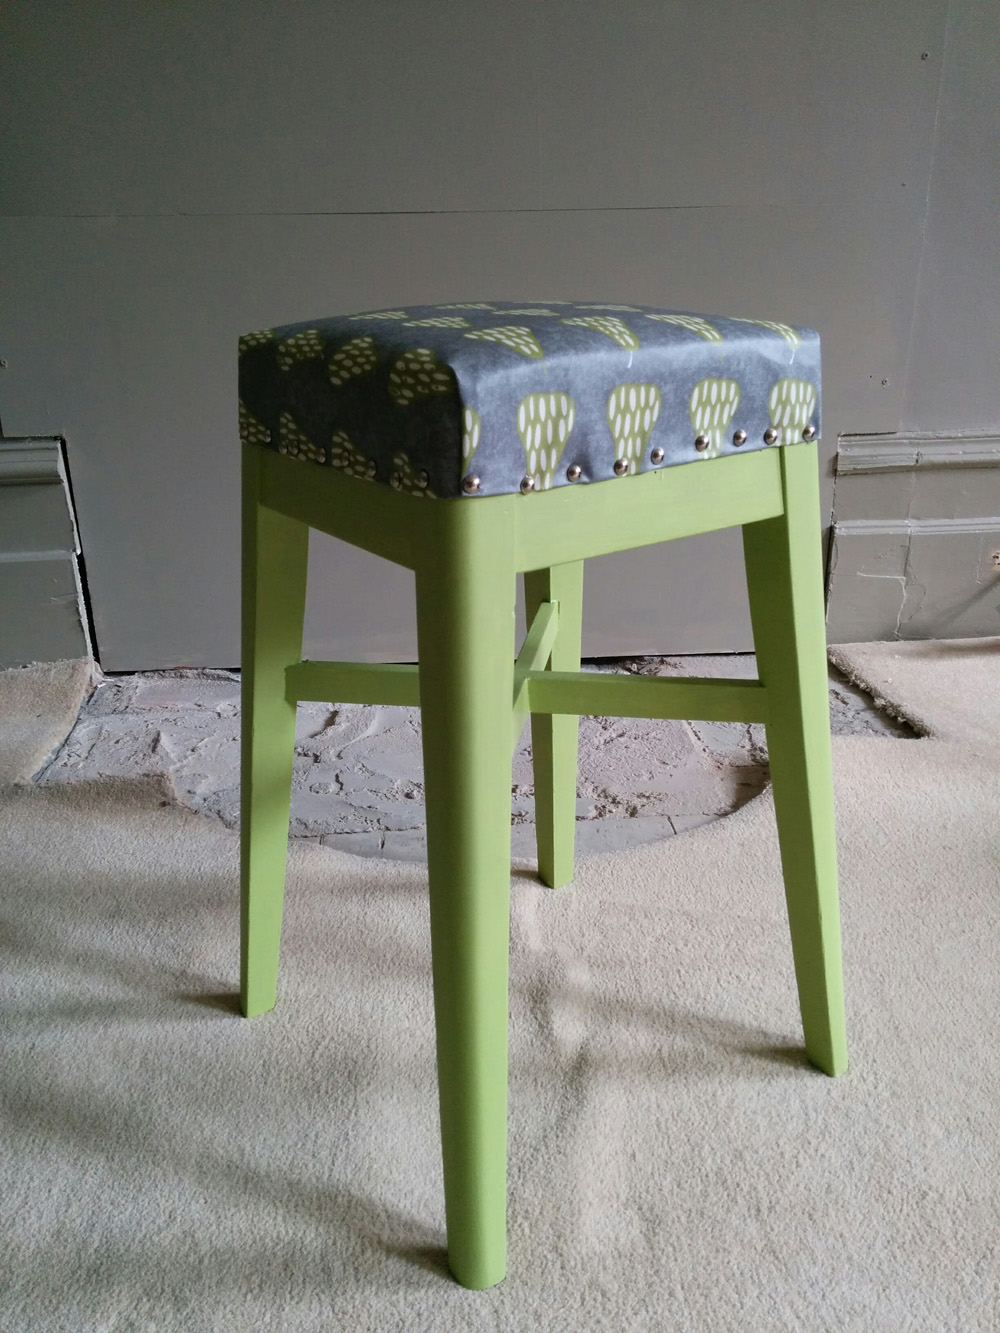 The kitchen stool makeover - end result